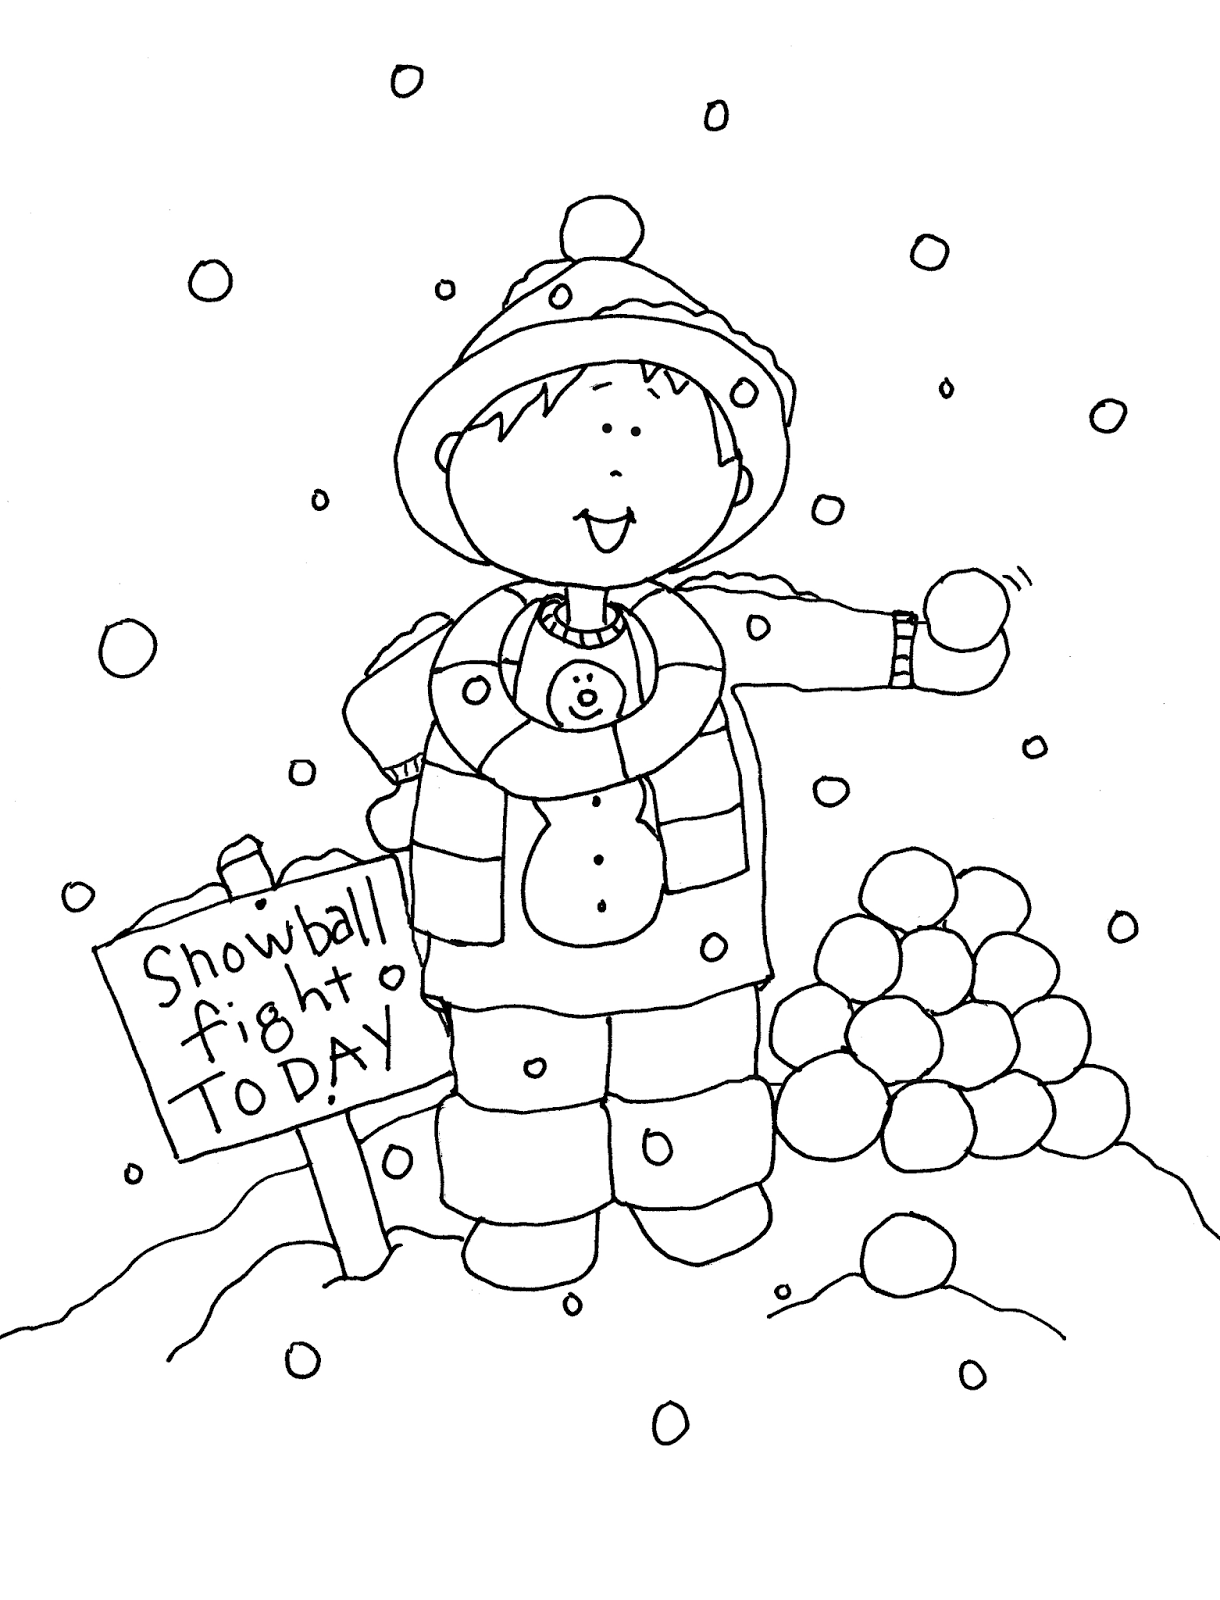 Snowball Fight Today Digi Stamps Digital Stamps Snowball Fight